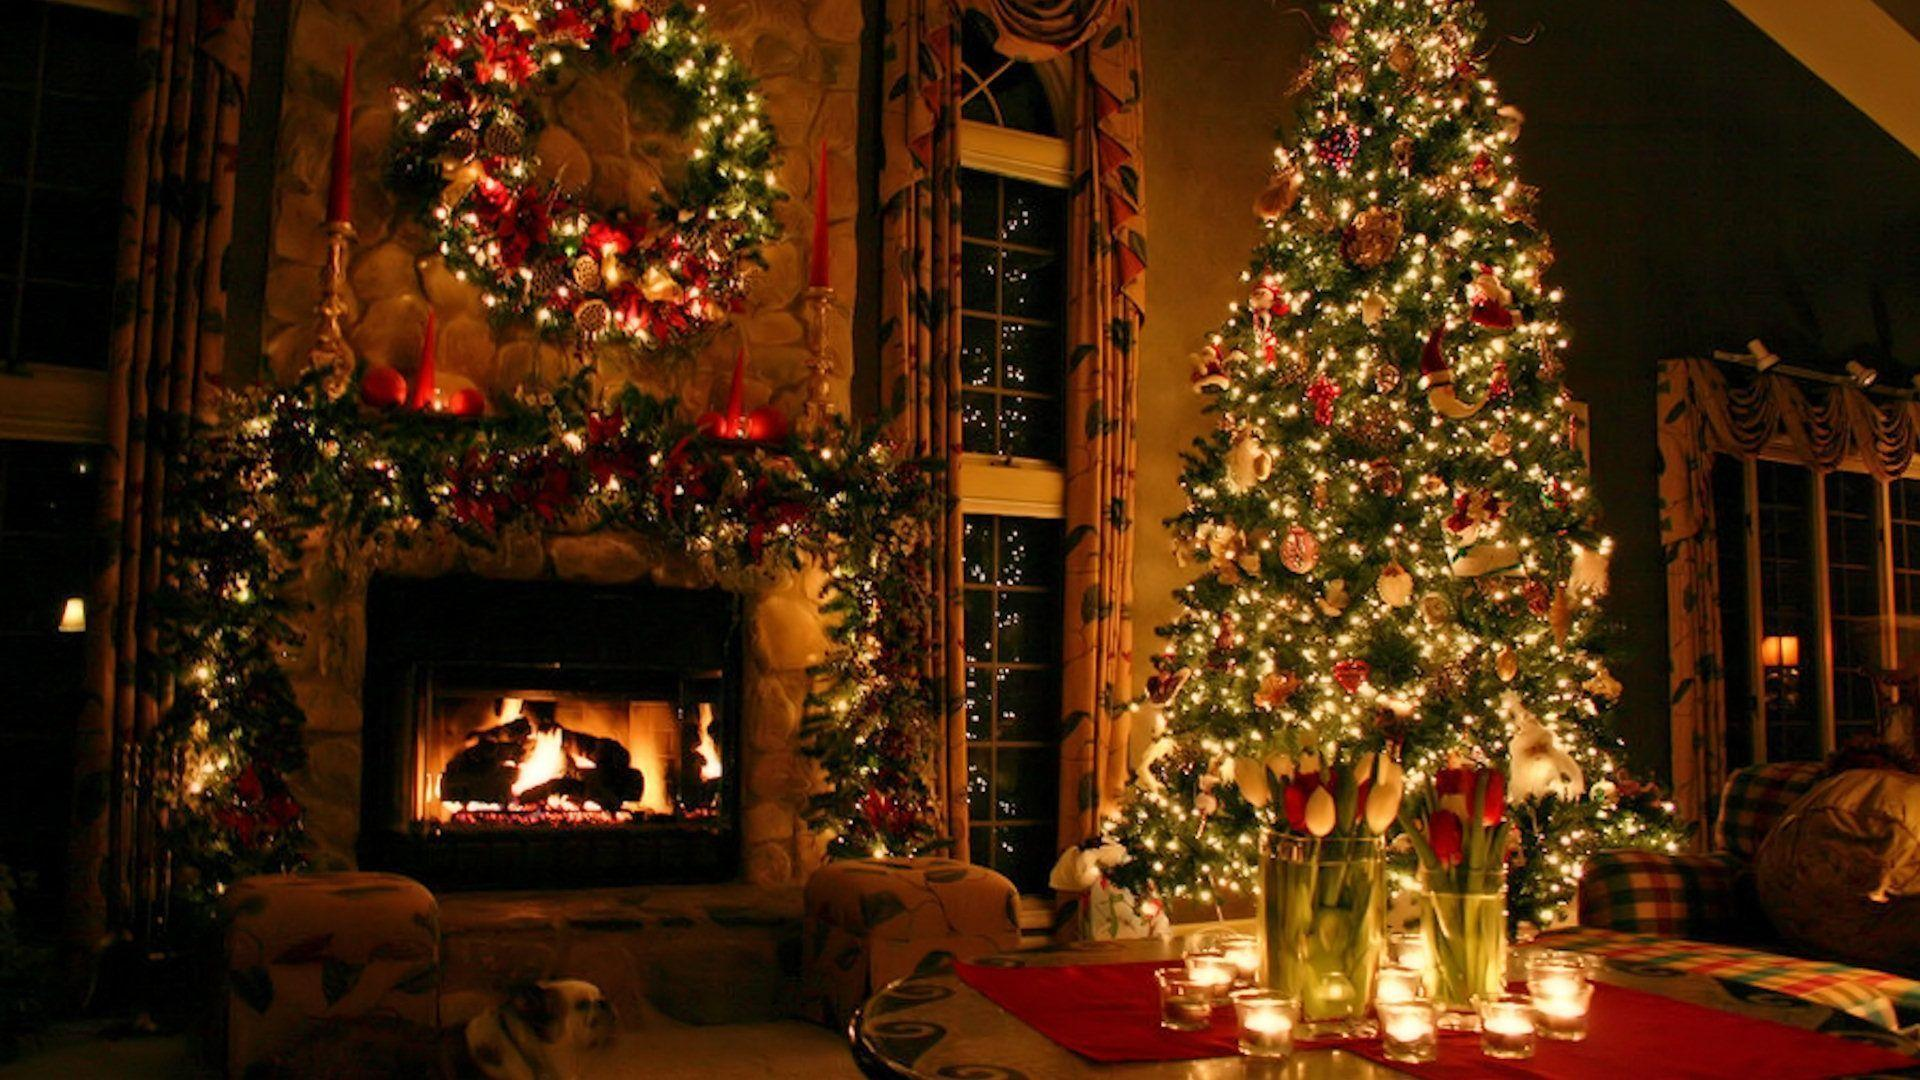 Christmas Night Wallpapers - Wallpaper Cave: http://wallpapercave.com/christmas-night-wallpaper